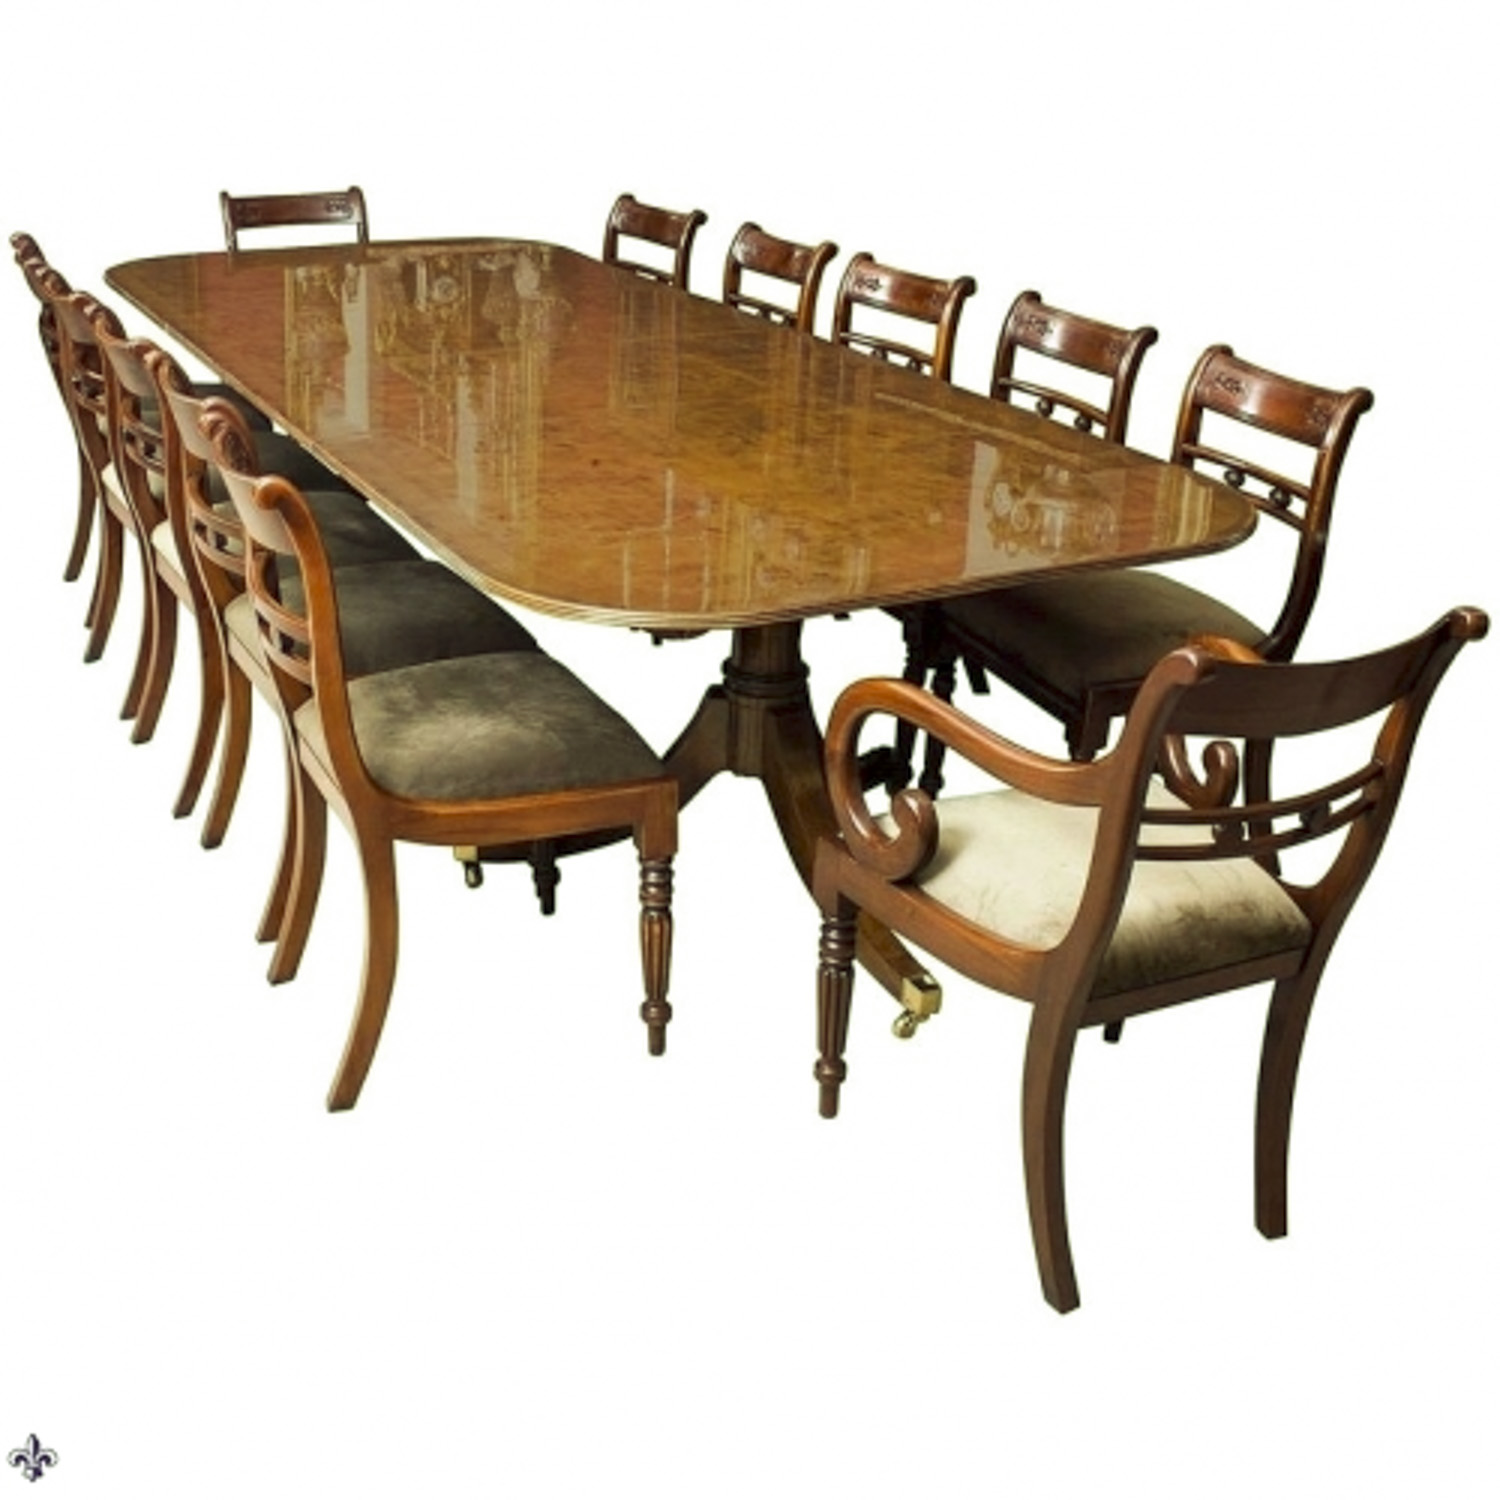 Dining Table For 10 12 Dining Table Sets For 12 Breakfast Table And Chairs Jerusalem House